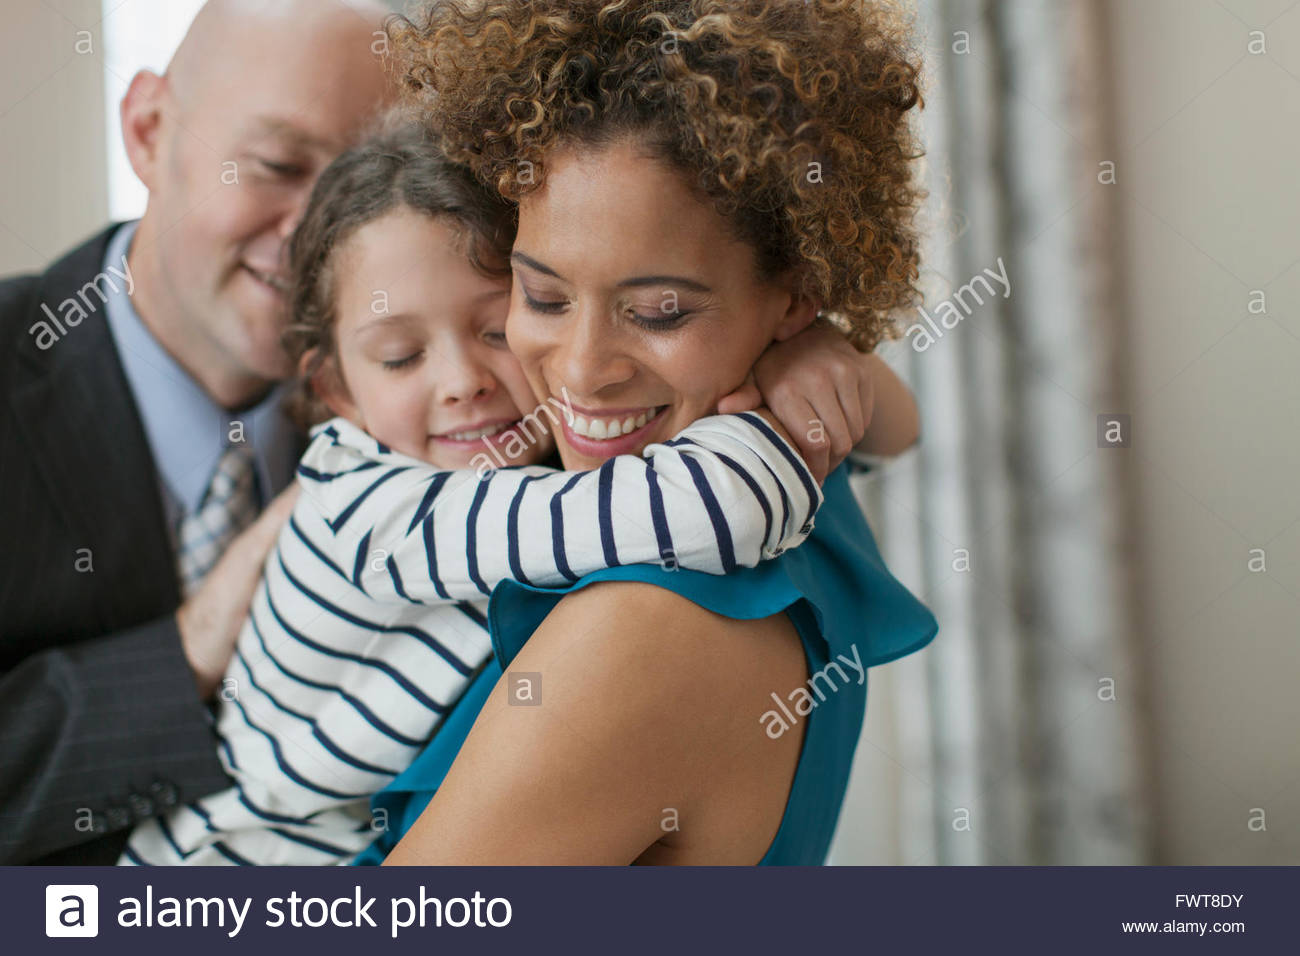 Young daughter hugging mother affectionately. - Stock Image